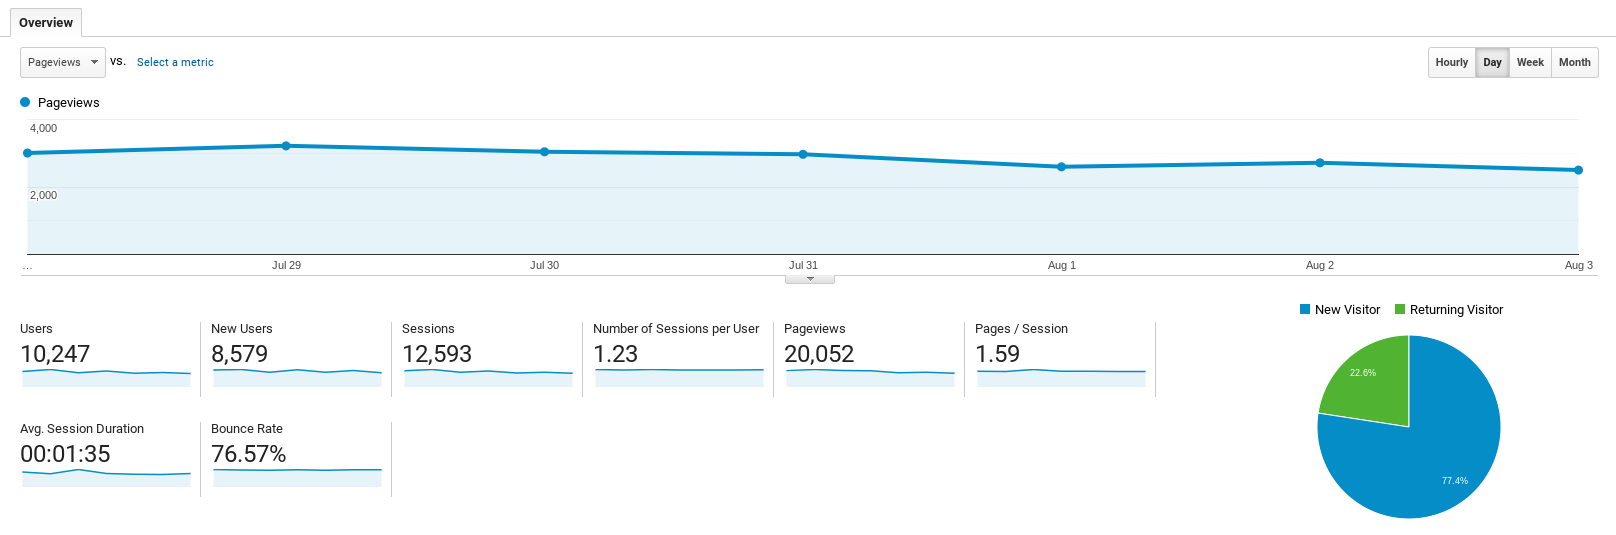 Google Analytics: Audience Overview page